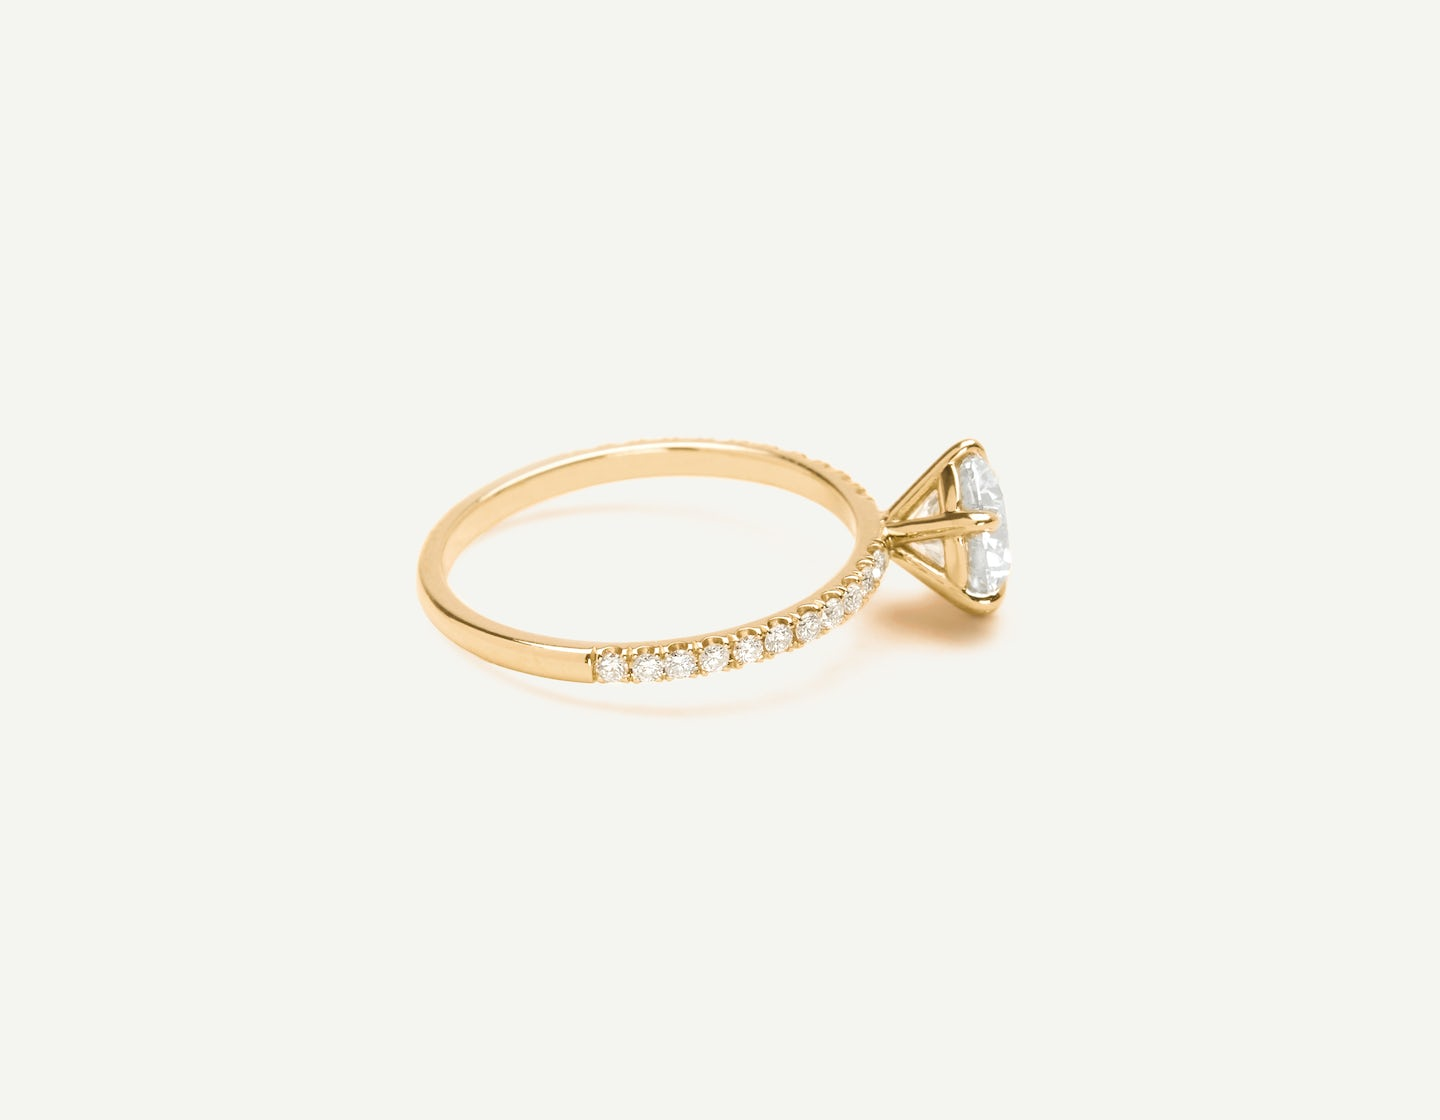 Solitaire Pavé Diamond Engagement Ring By Vrai Oro